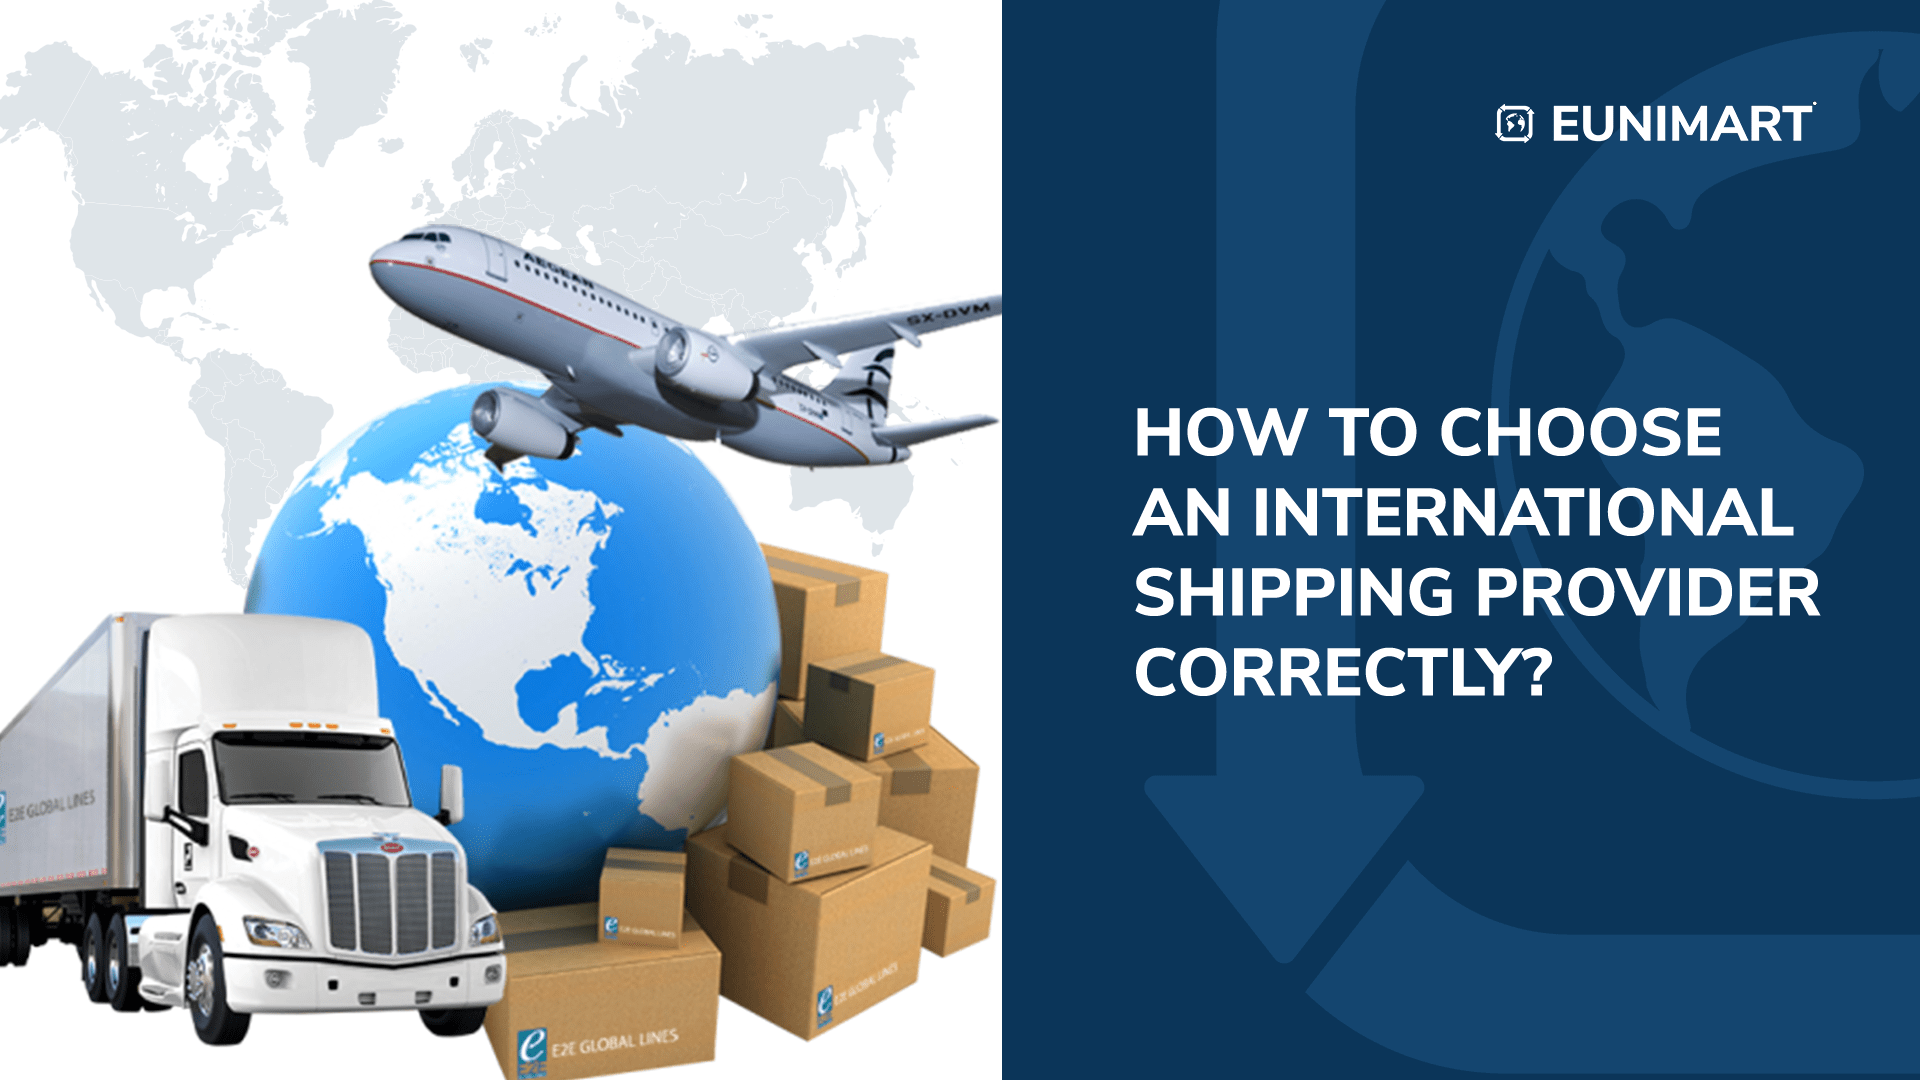 How to Choose an International Shipping Provider Correctly?